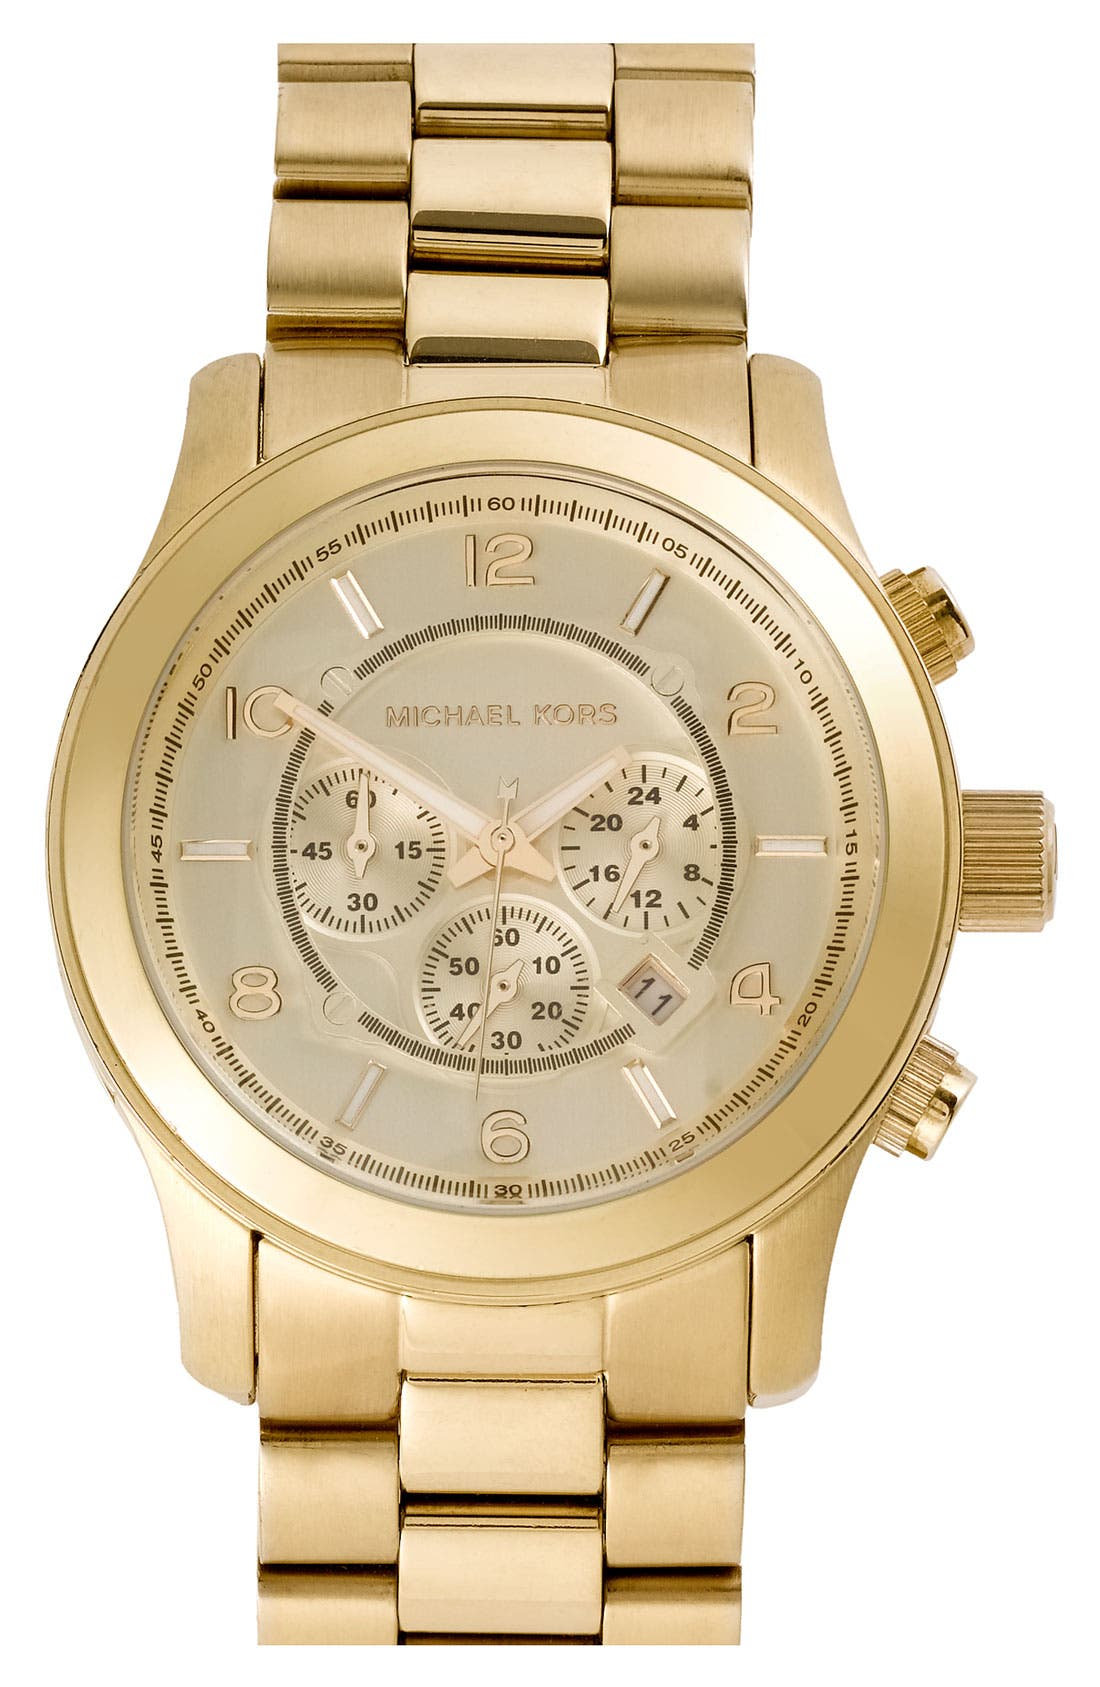 Main Image - Michael Kors 'Large Runway' Chronograph Bracelet Watch, 45mm